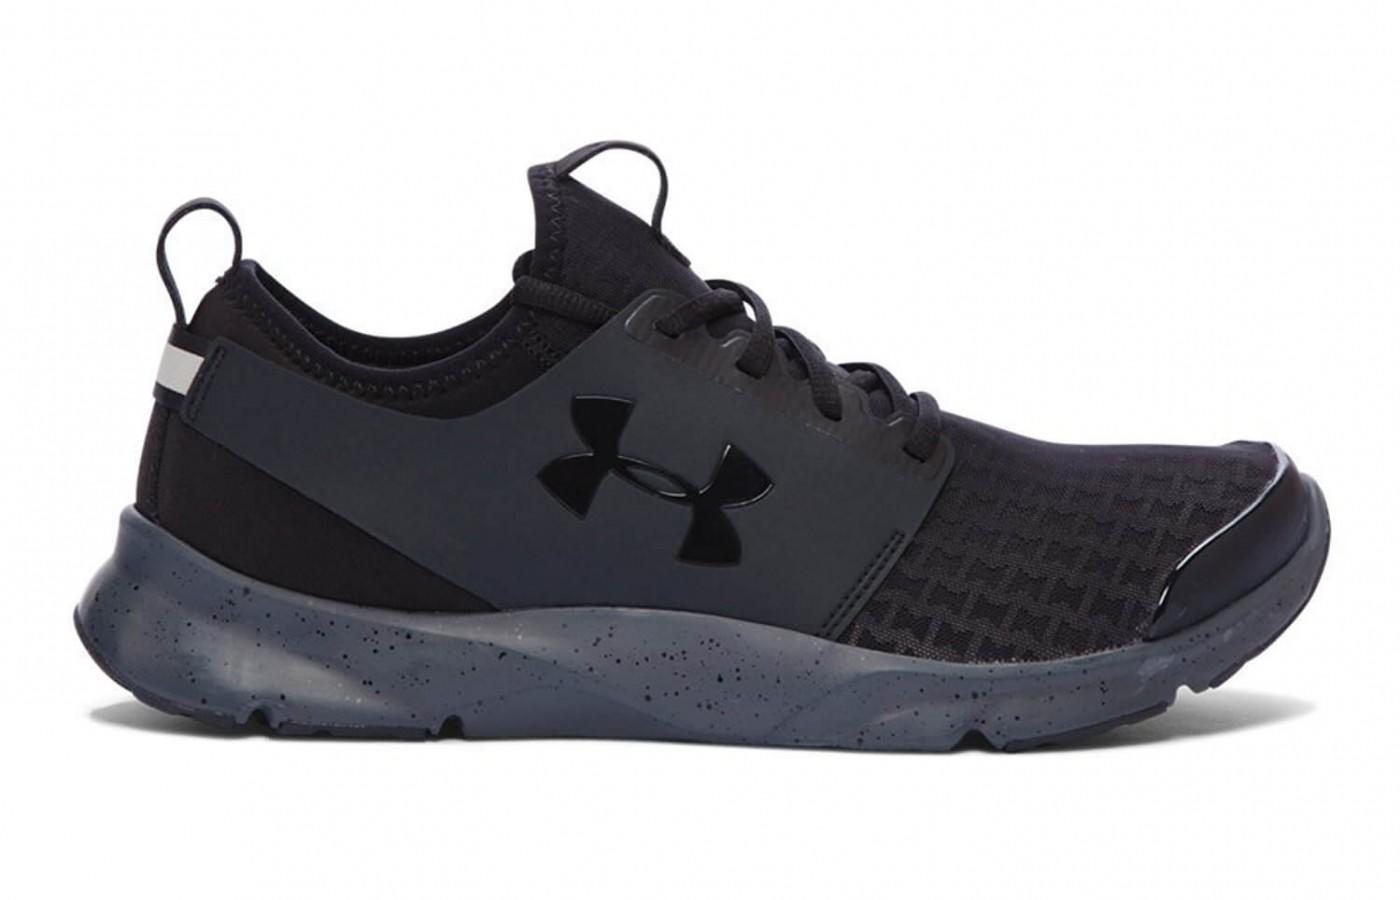 The Under Armour Drift sideview with logo